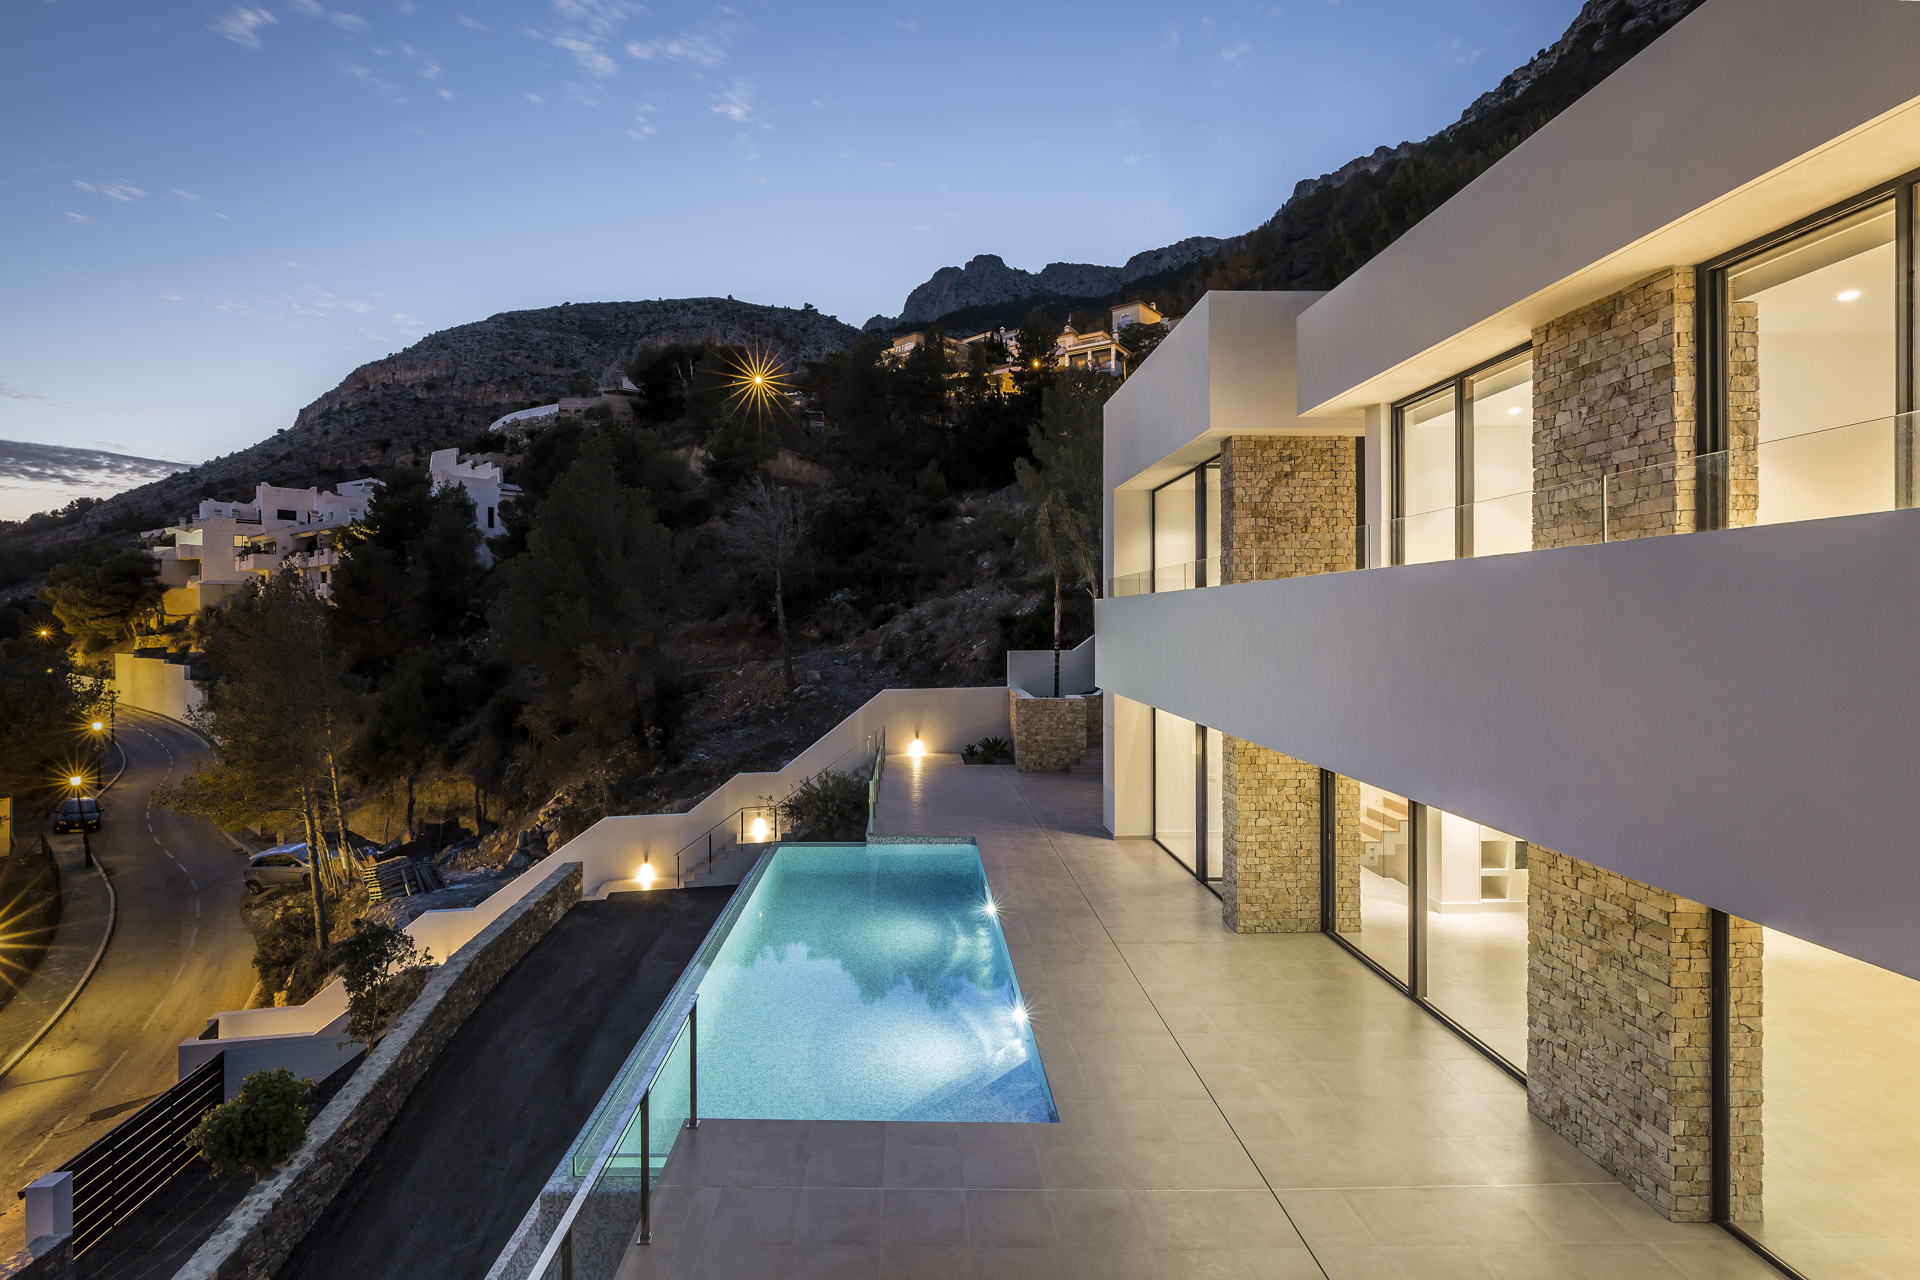 Pascual Giner Arquitectos